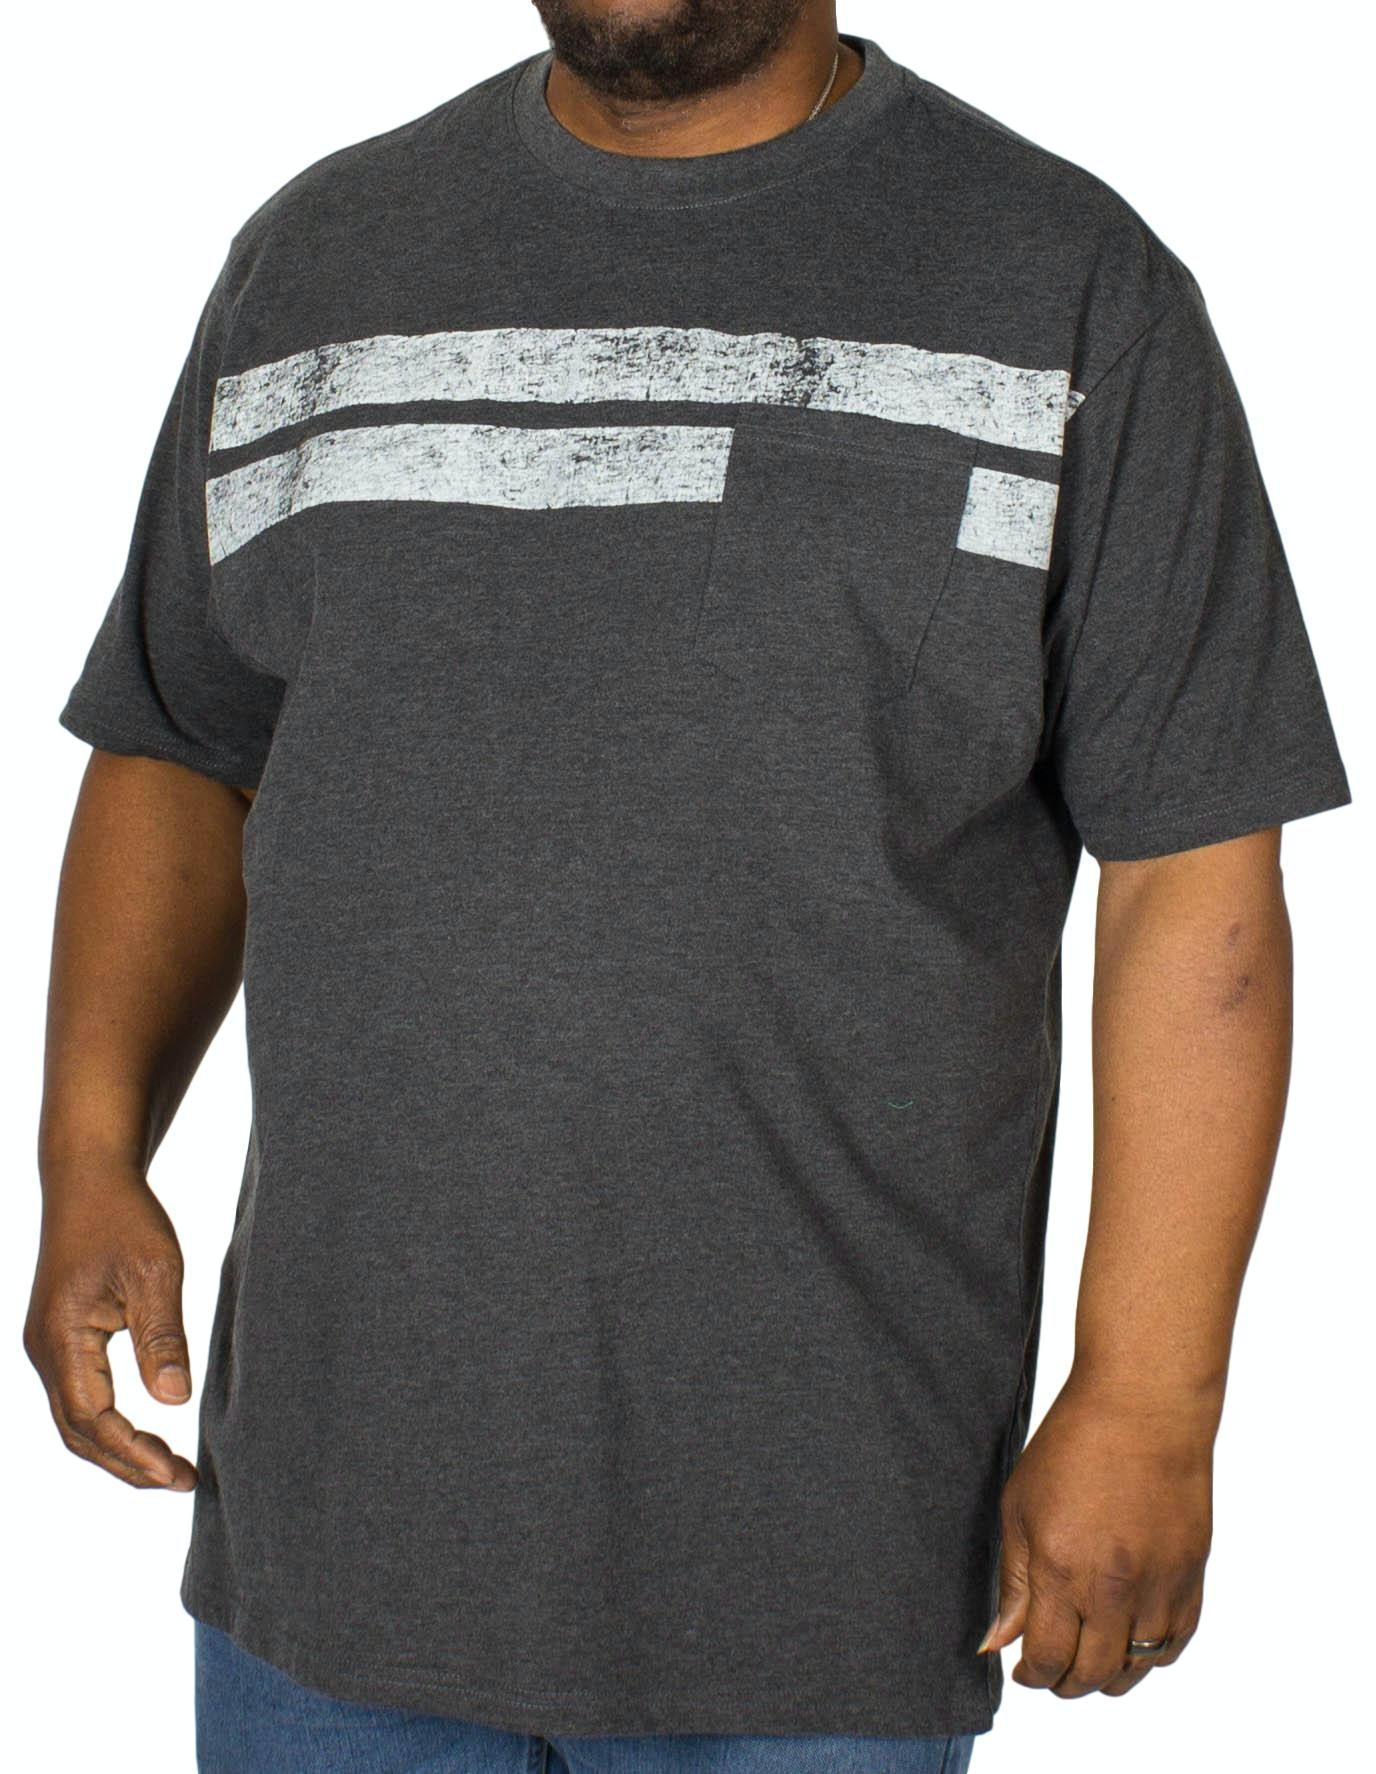 KAM Stripe Print T-Shirt Charcoal